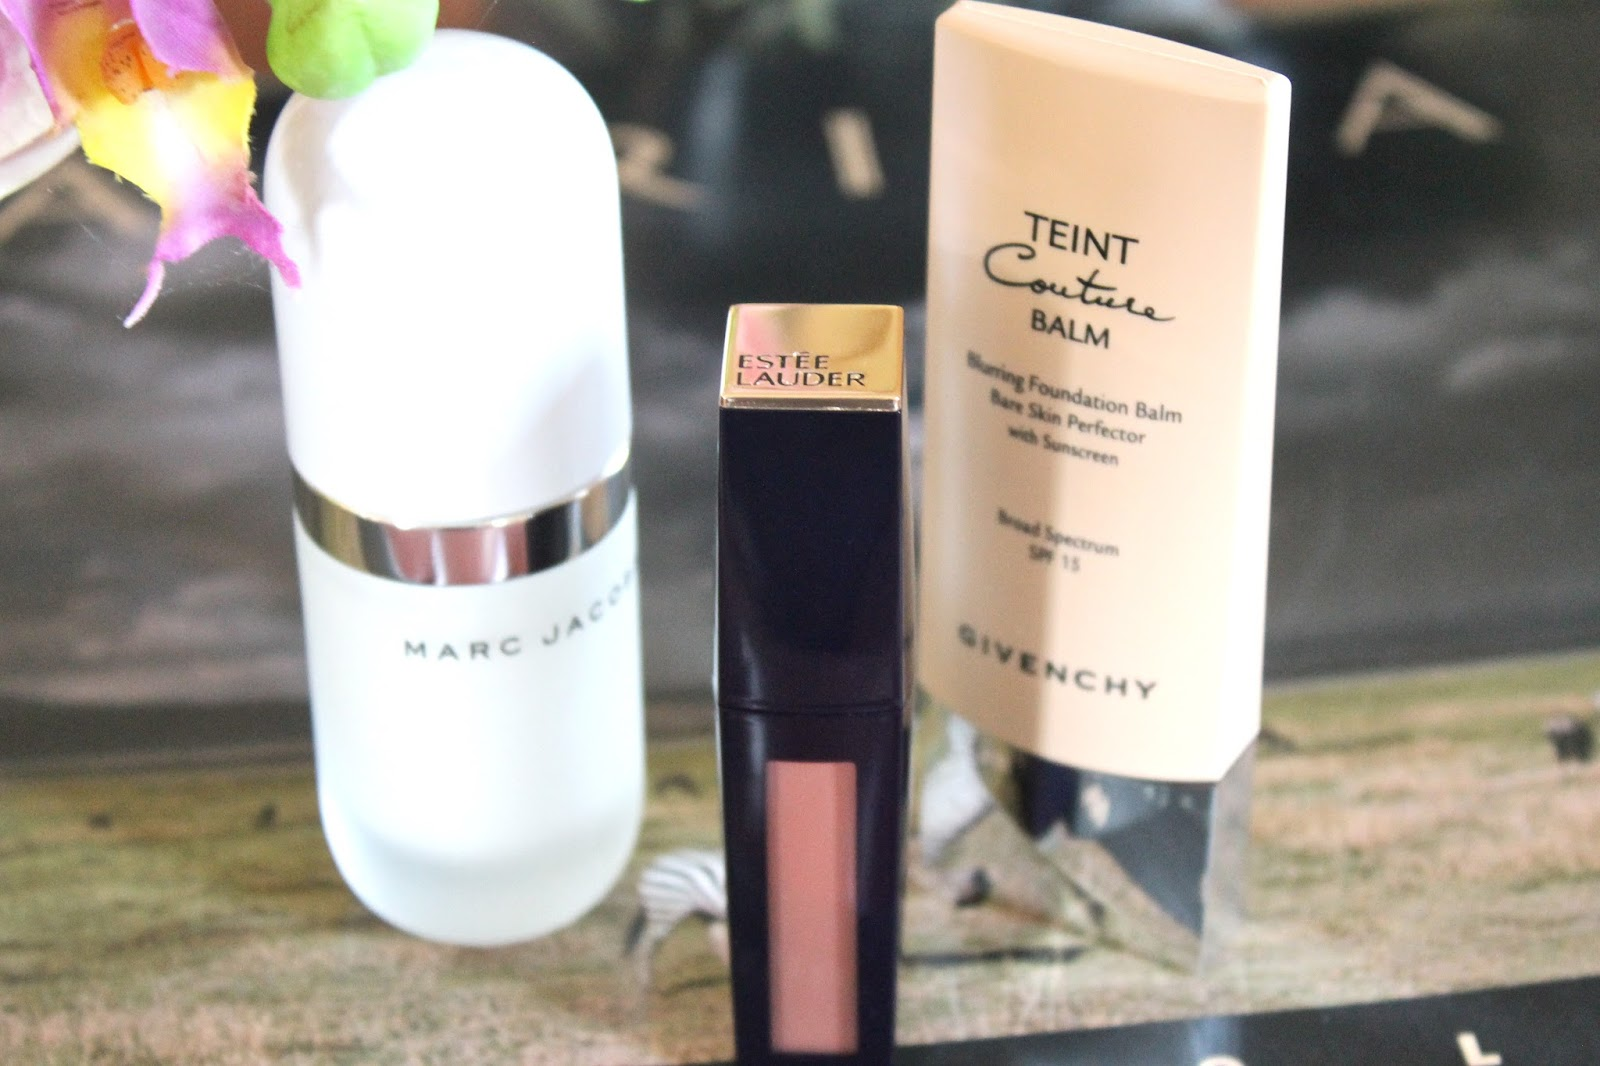 THREE NEW MAKEUP RELEASES I'M LOVING